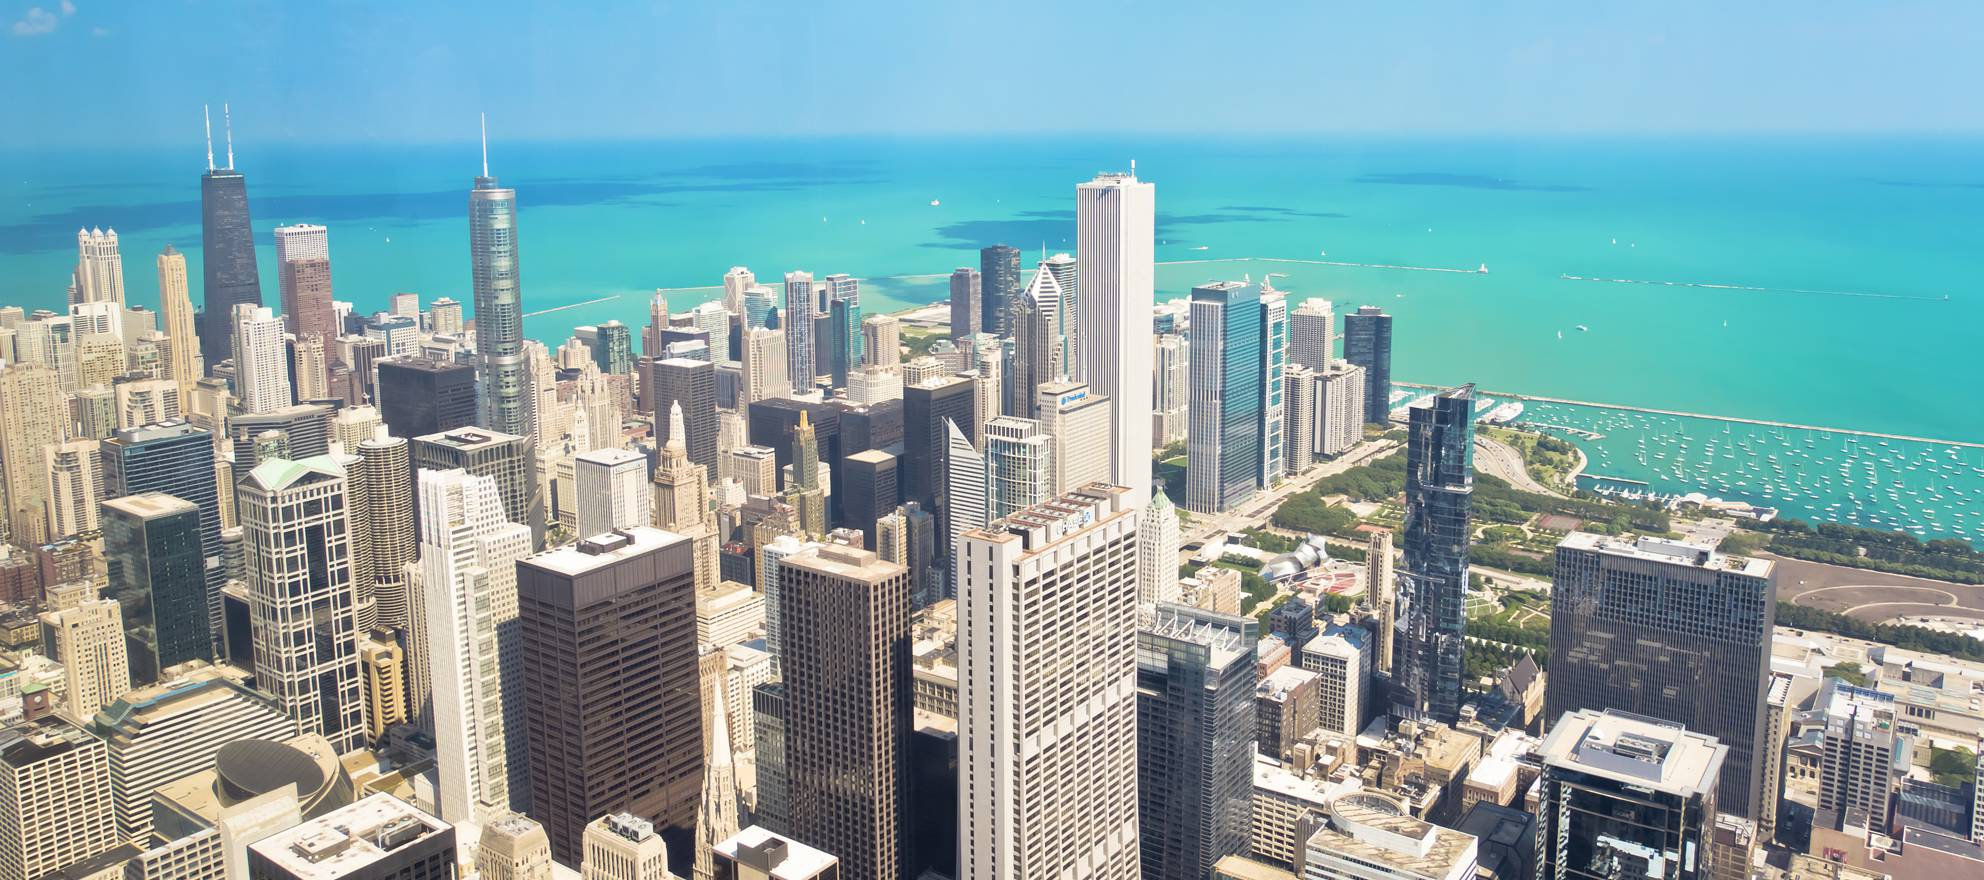 S&P Index finds Chicago home prices falling